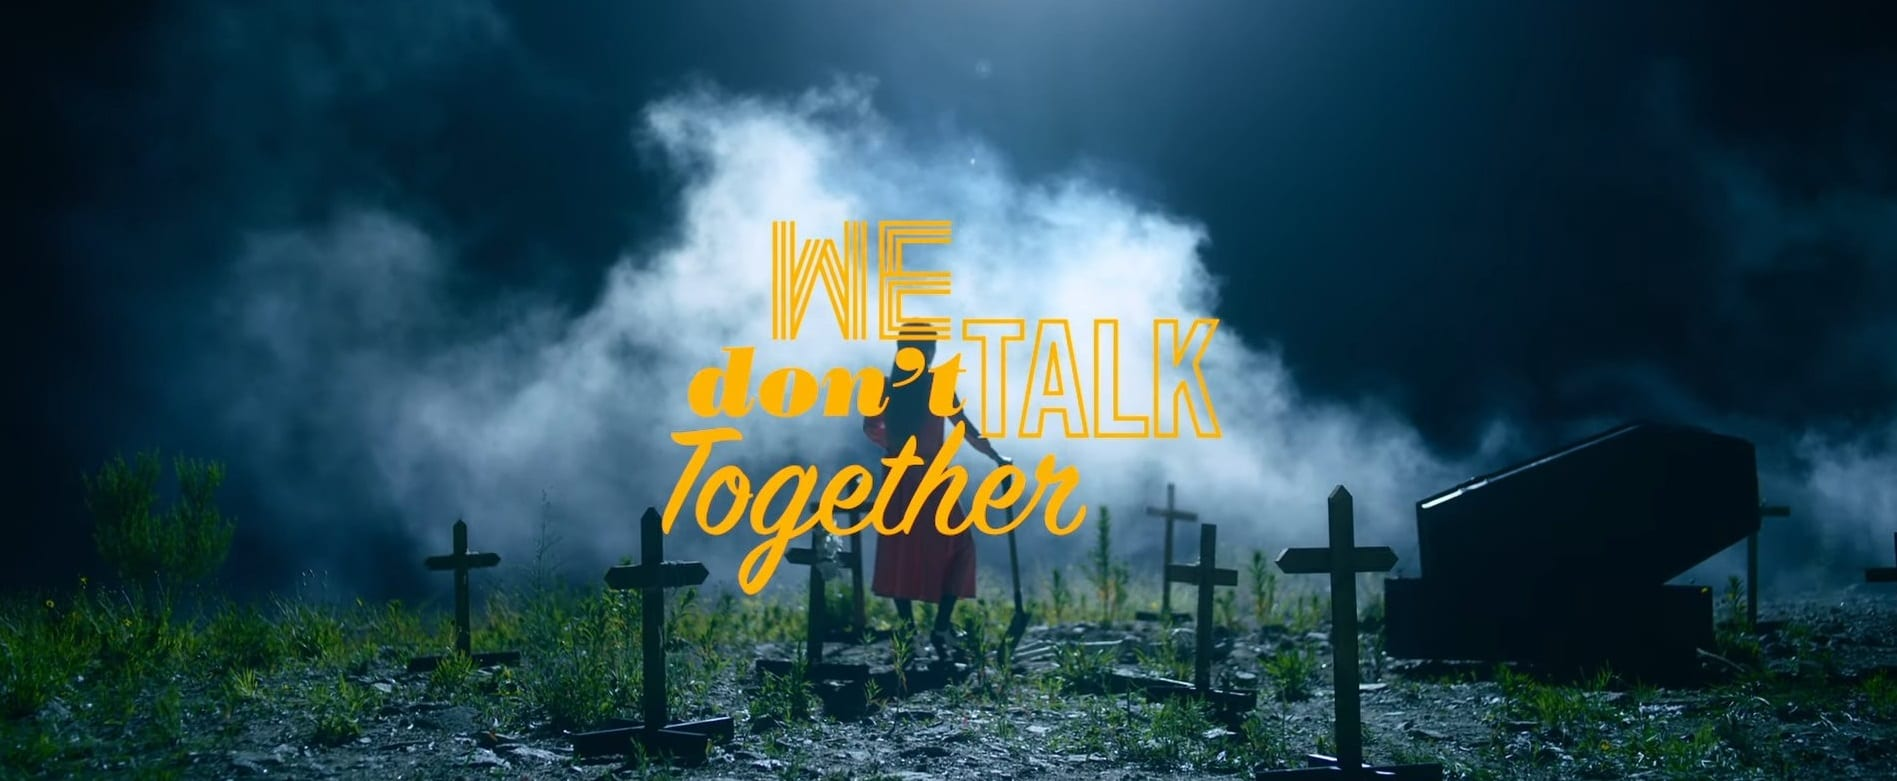 """WATCH: Heize Has A Sad Tale Of Love In """"We Don't Talk Together"""" MV Featuring Giriboy"""